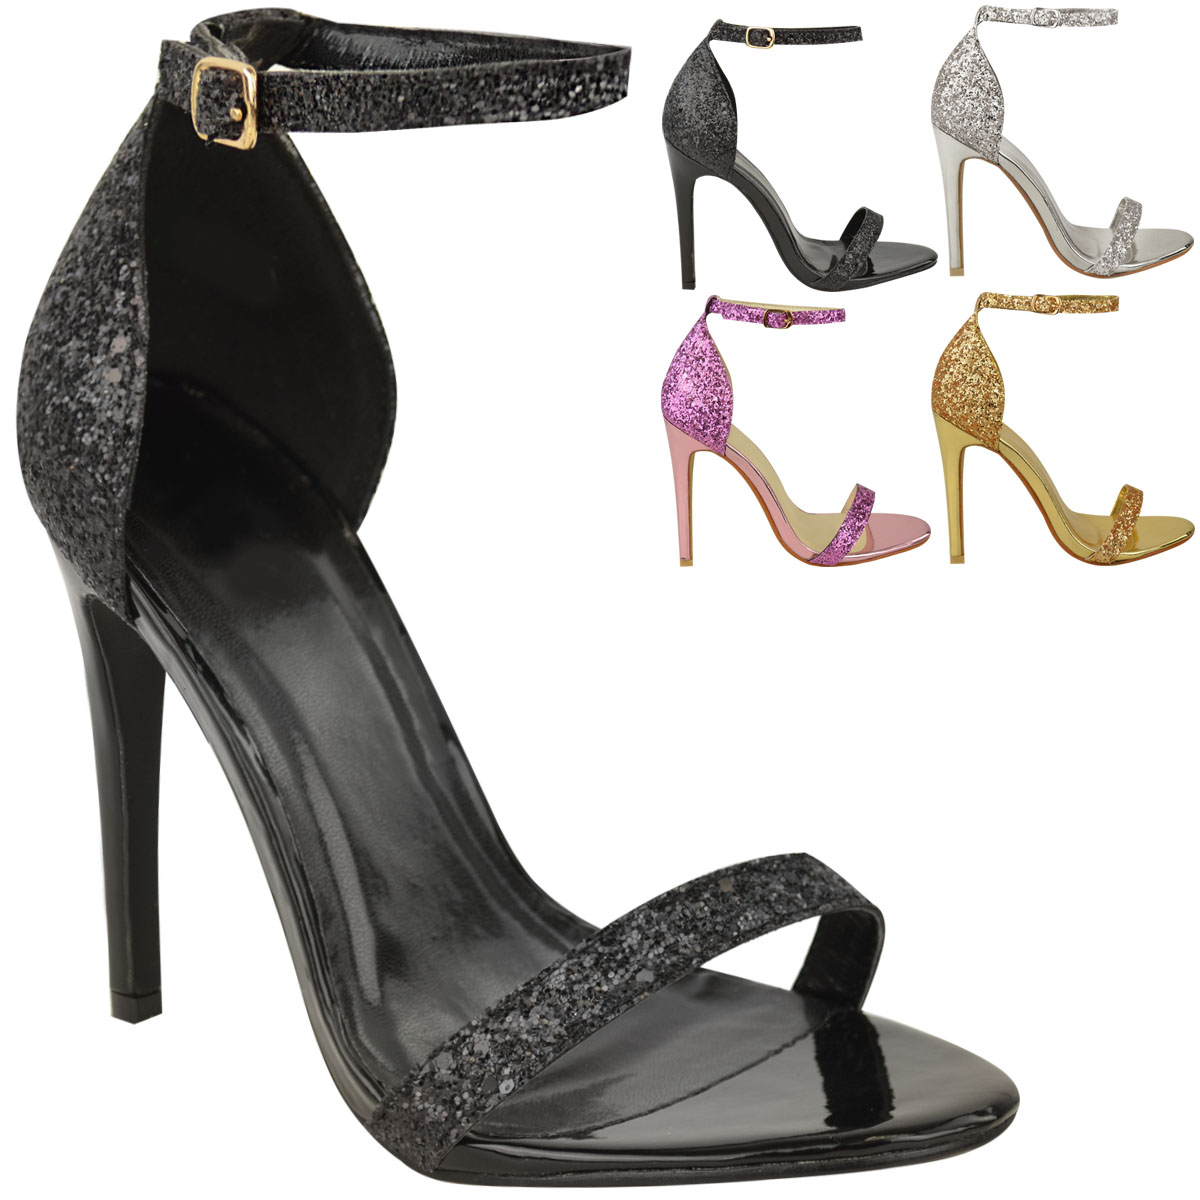 new womens ladies barely there prom high heels party sandals glitter shoes size ebay. Black Bedroom Furniture Sets. Home Design Ideas